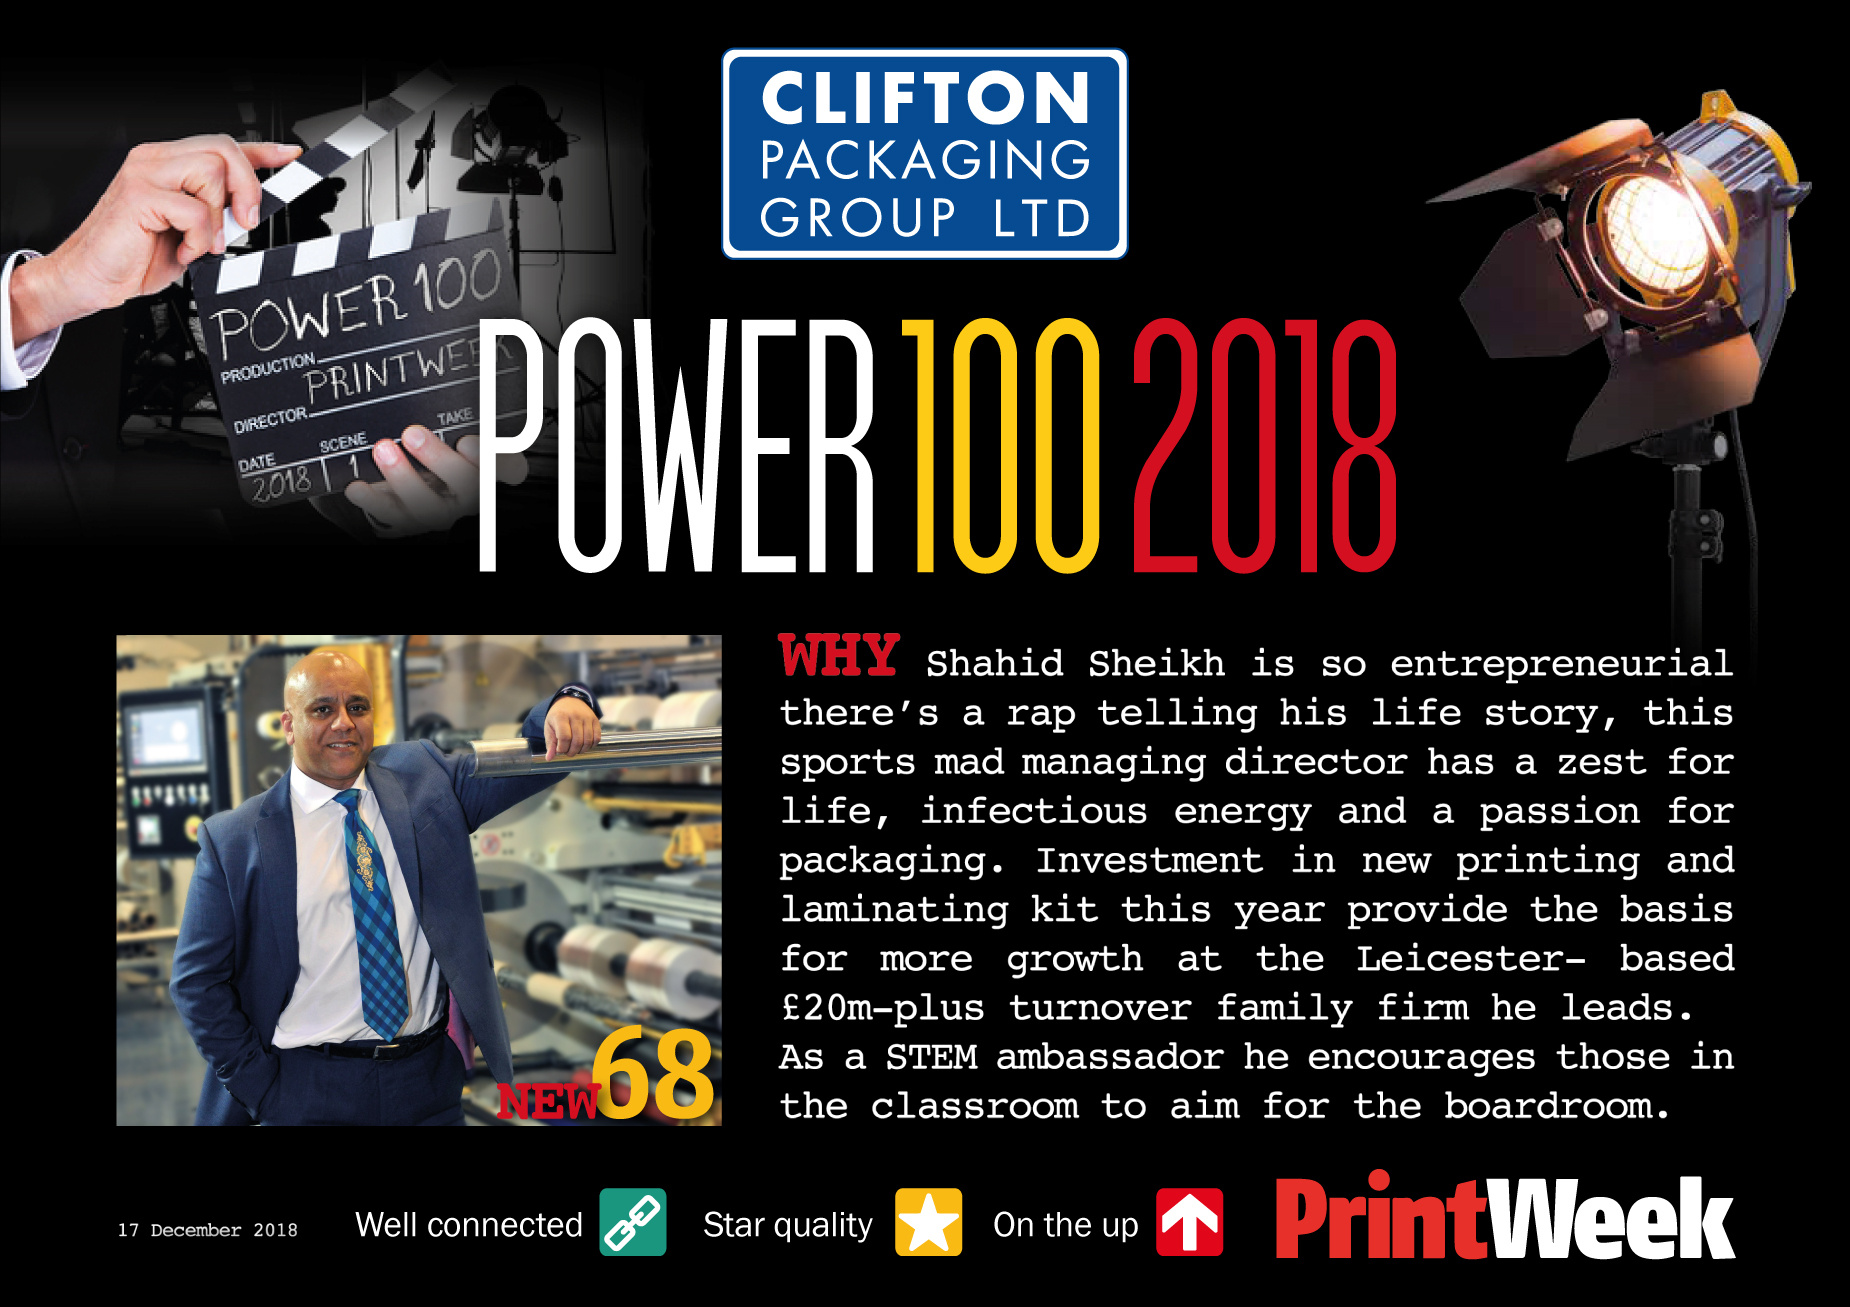 Print Week Power 100 2018, Clifton Packaging Group